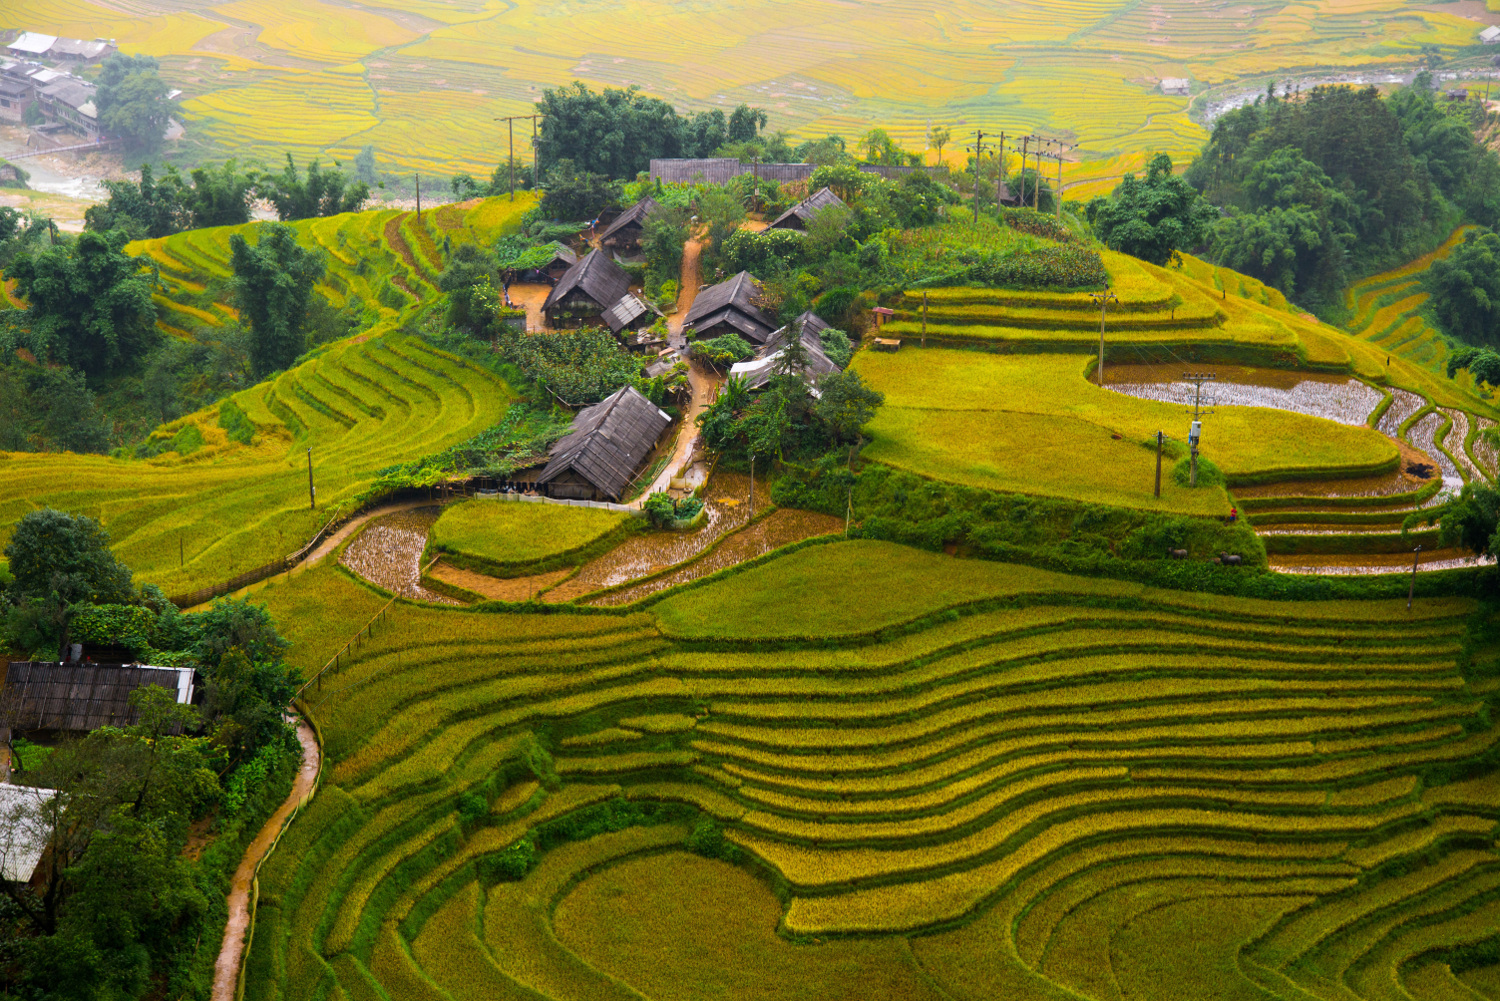 Rice terraces - Sapa, Vietnam